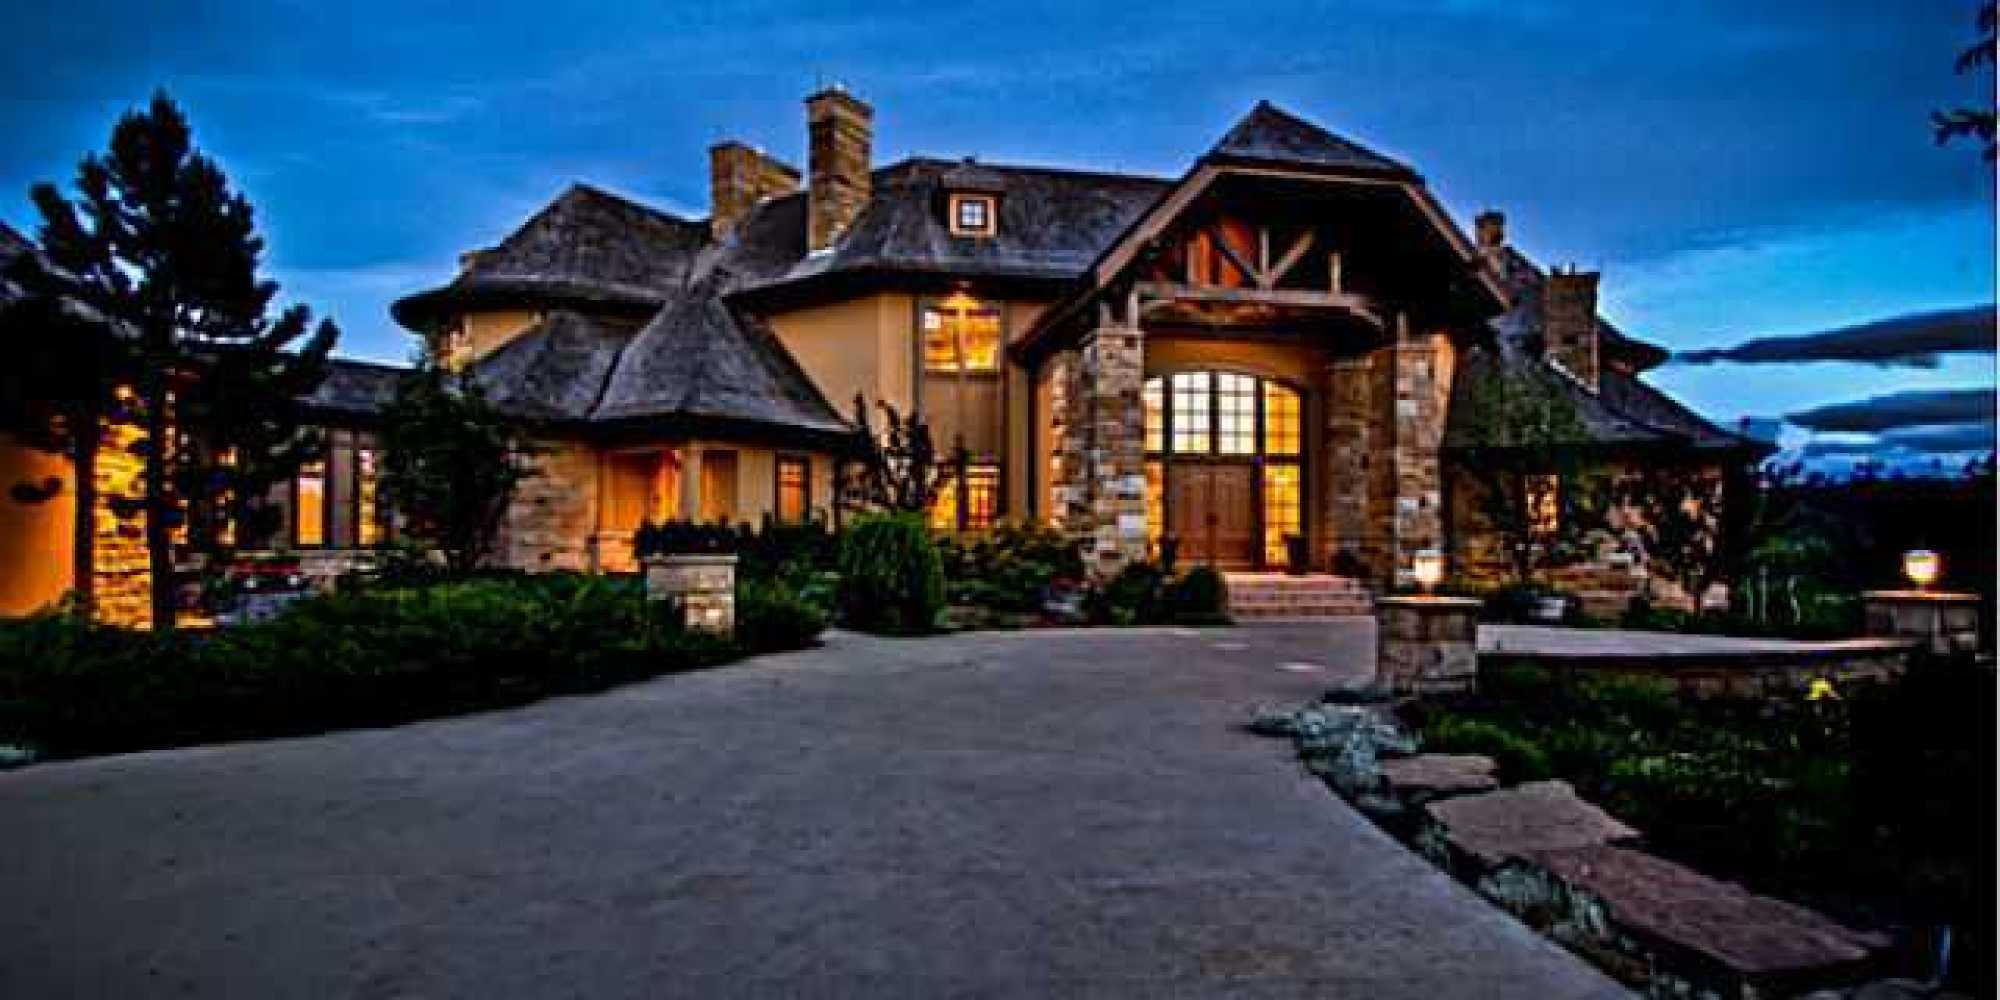 Alberta 39 s most expensive homes for sale the top 3 photos for Style at home canada